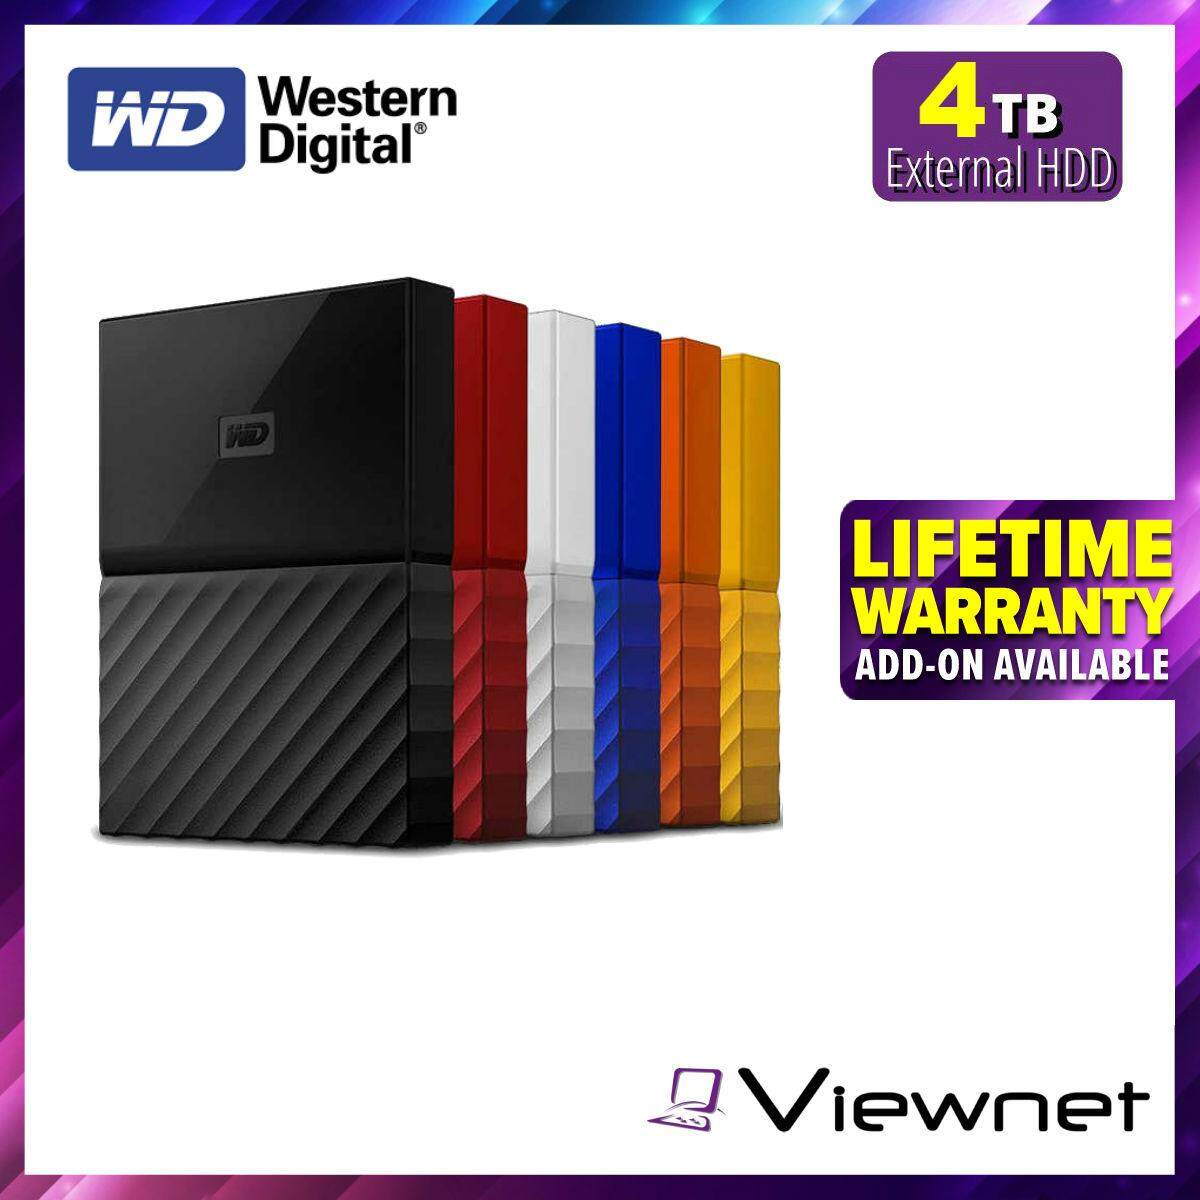 WD WESTERN DIGITAL MY PASSPORT 4TB PORTABLE STORAGE EXTERNAL HARD DISK 2 5'  USB3 0 USB2 0 COMPATIBLE AUTO BACKUP PASSWORD PROTECTION